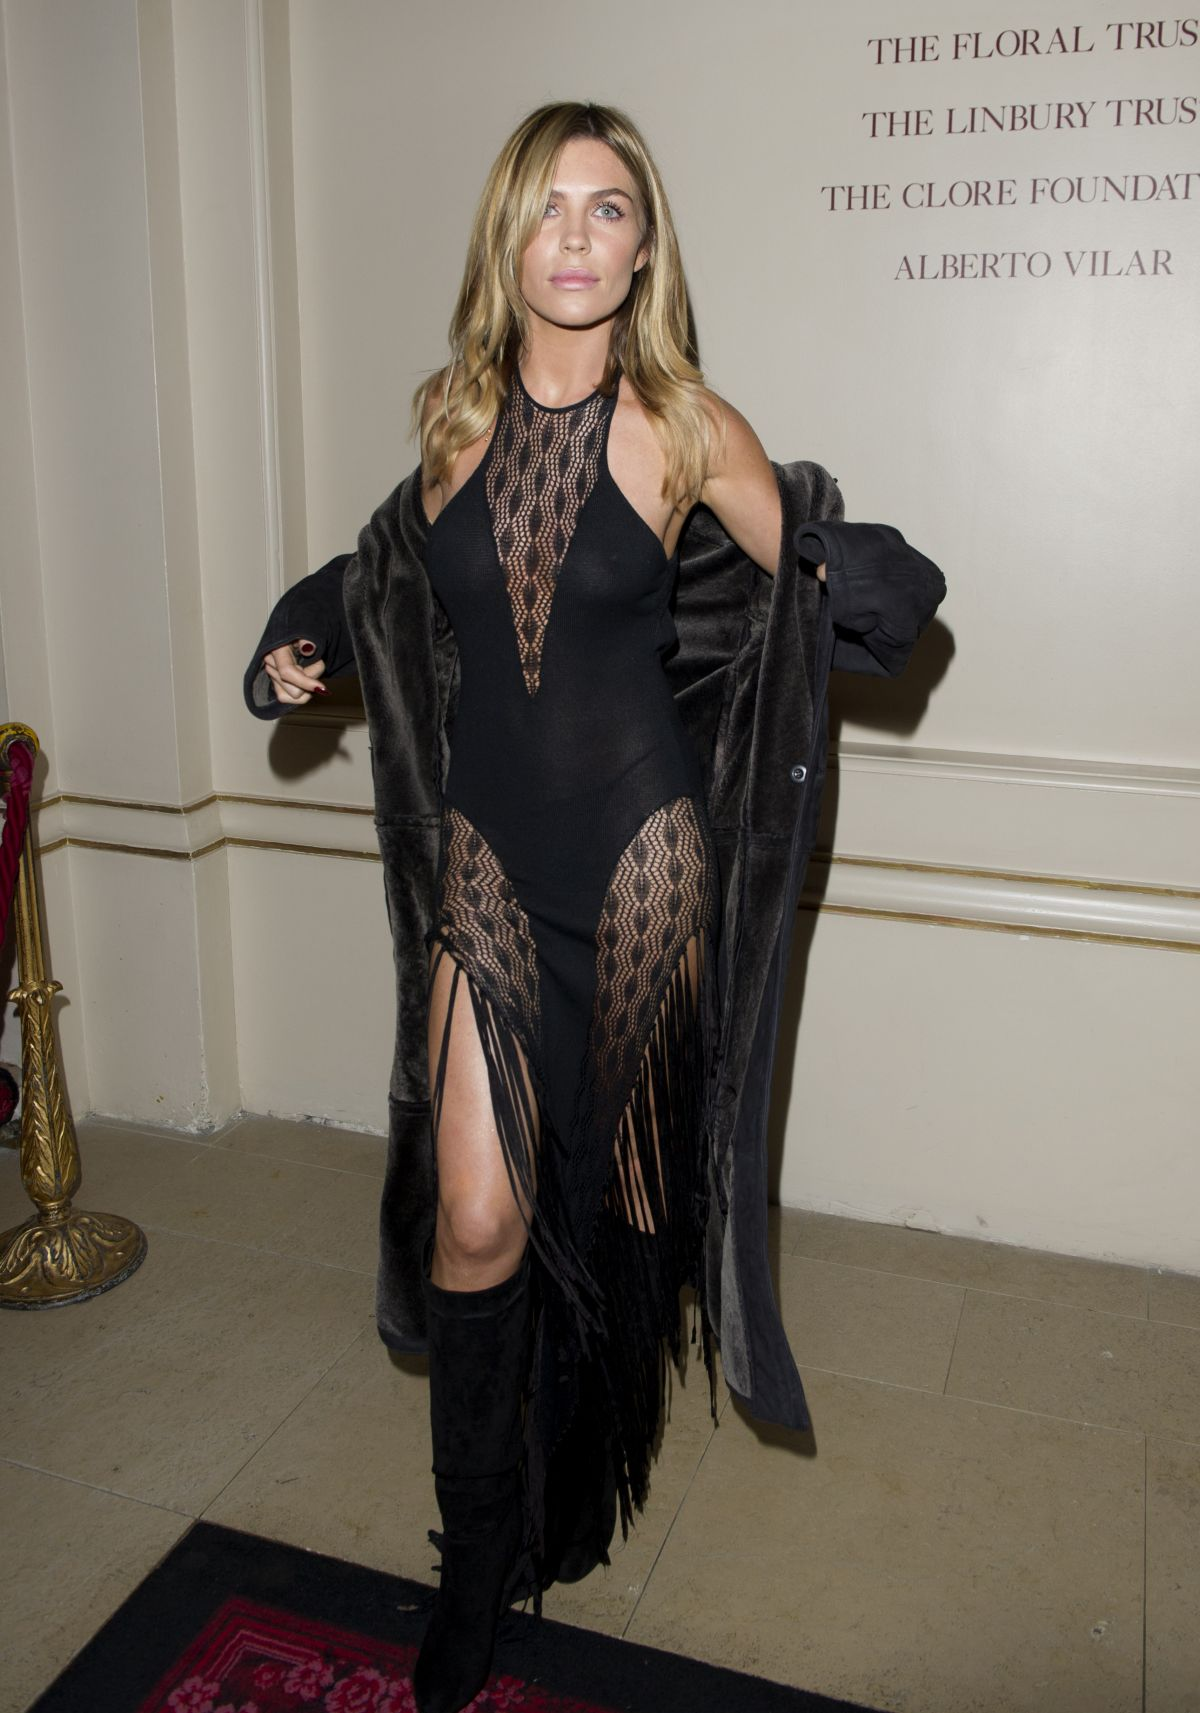 ABIGAIL ABBEY CLANCY at Julien Macdonald Fashion Show in London